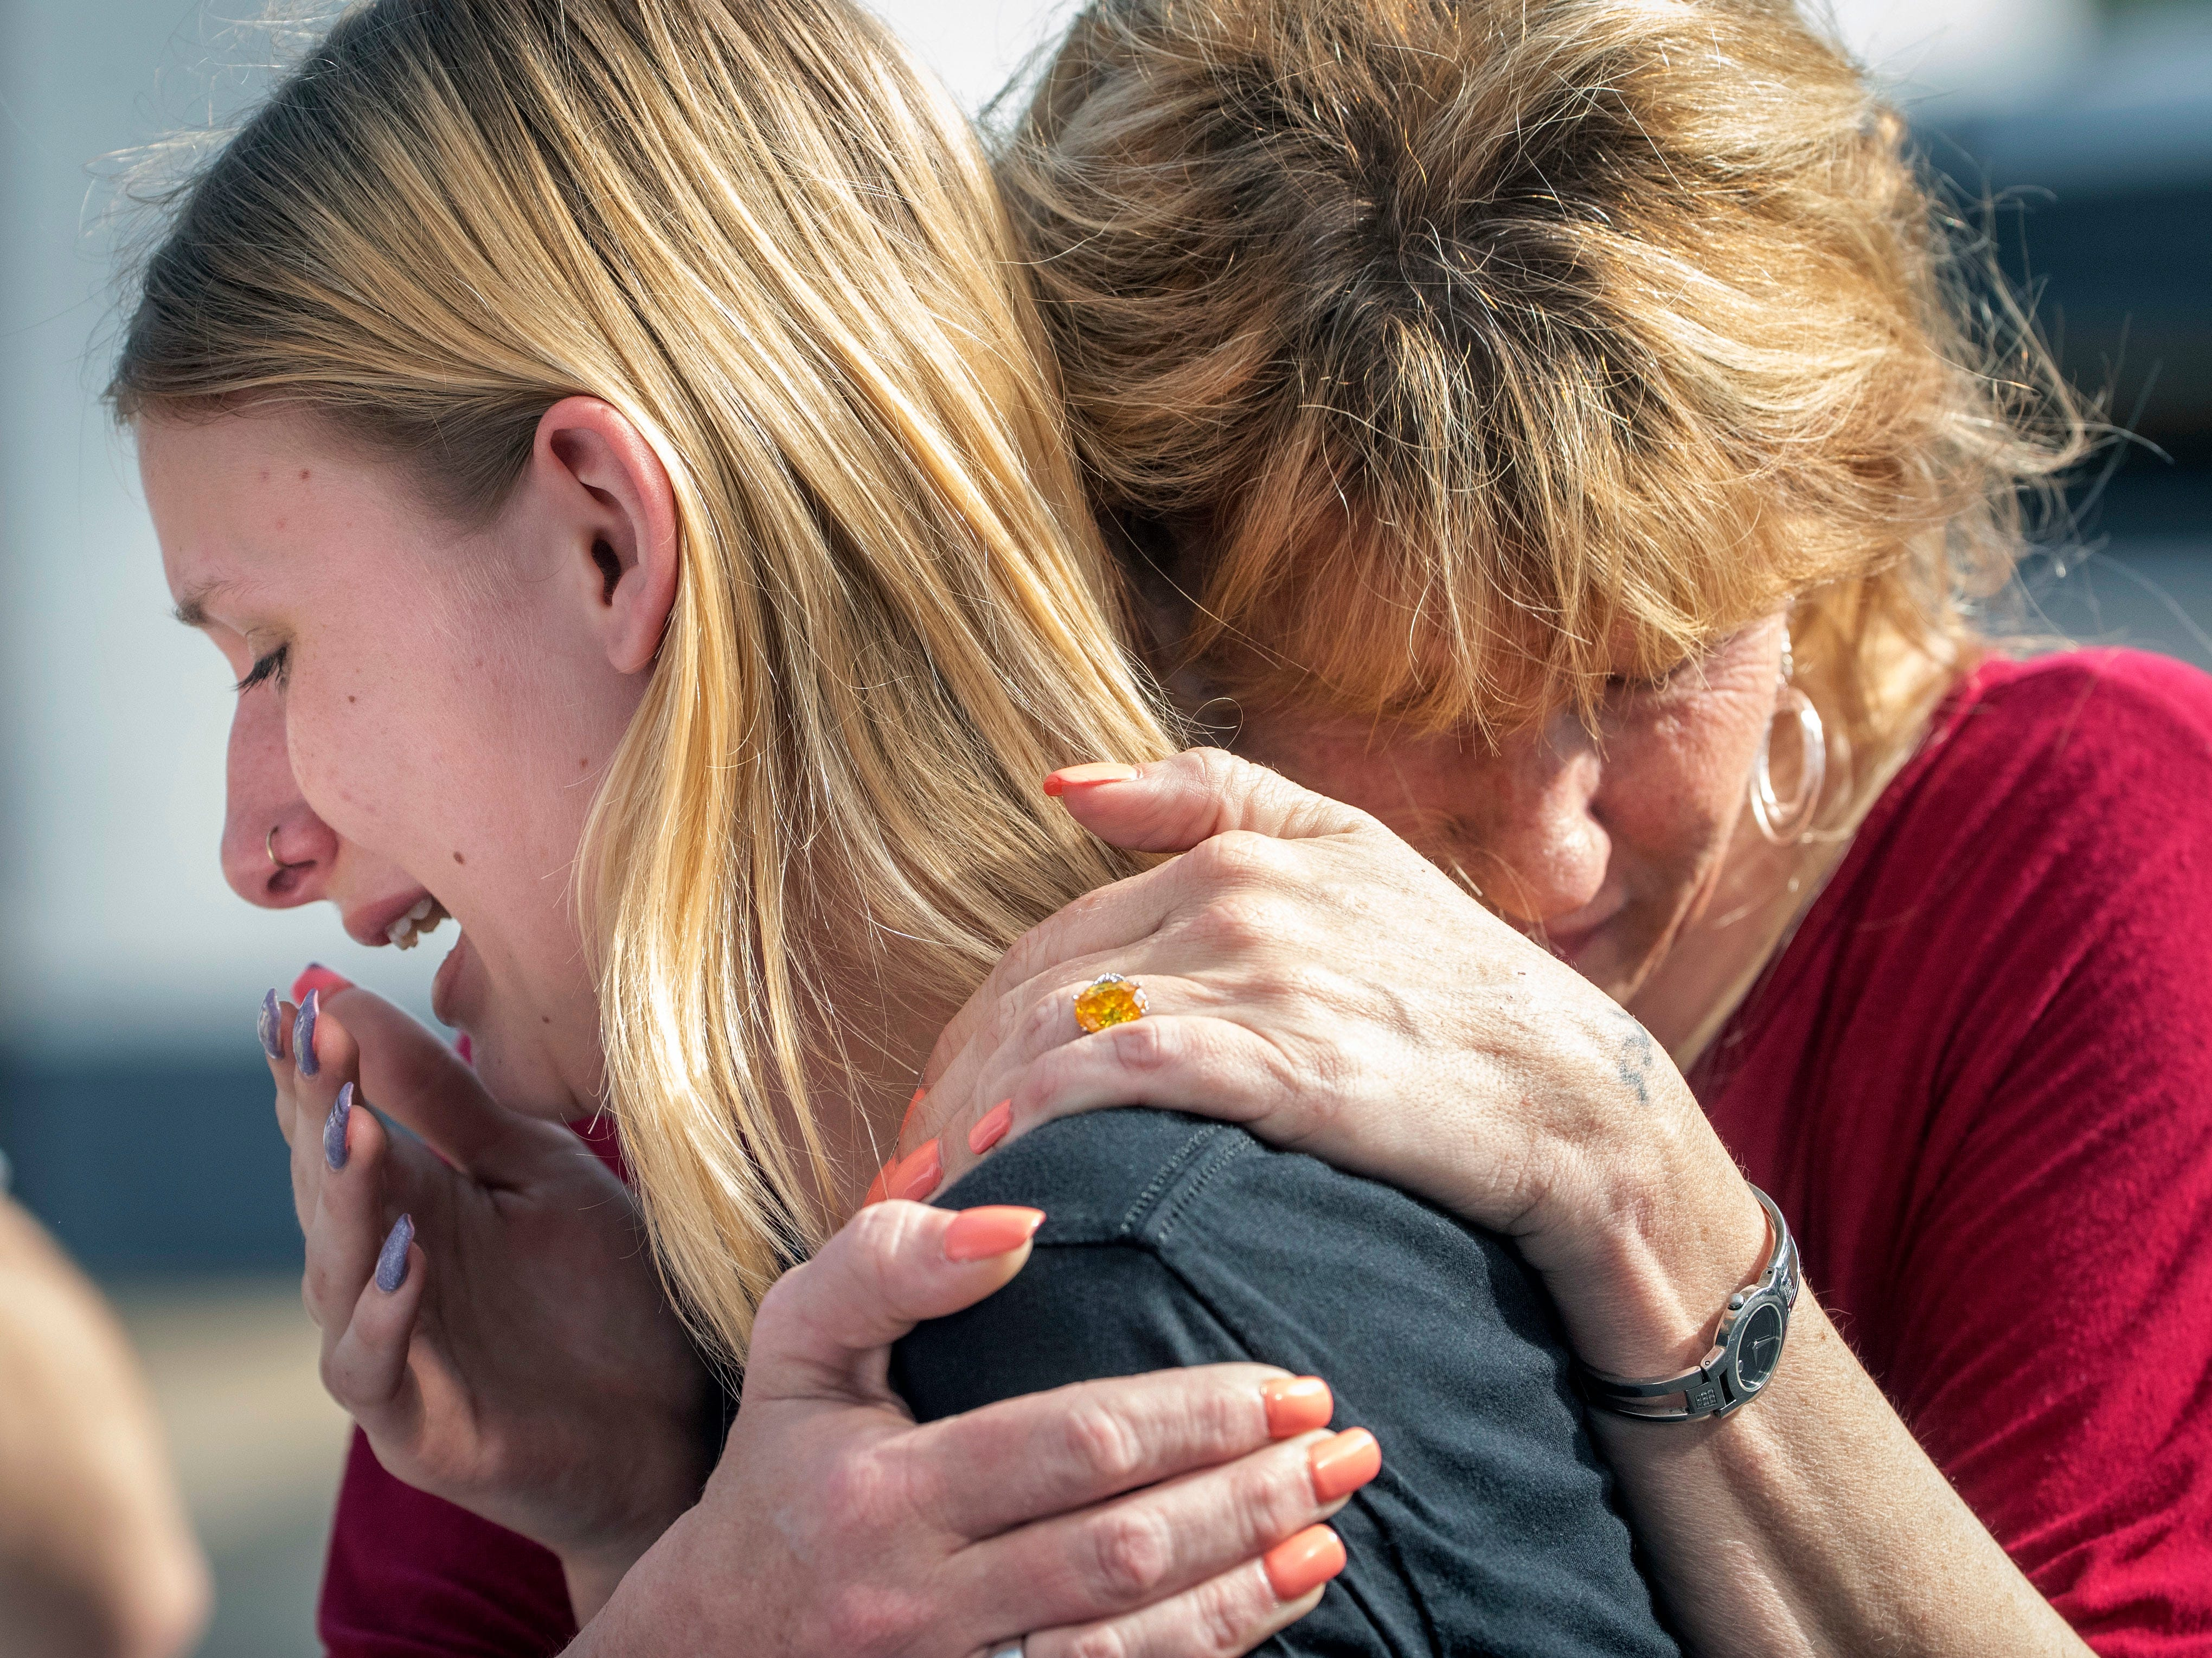 May 18, 2018: Santa Fe High School student Dakota Shrader is comforted by her mother Susan Davidson following a shooting at the school in Santa Fe, Texas. Shrader said her friend was shot in the incident.